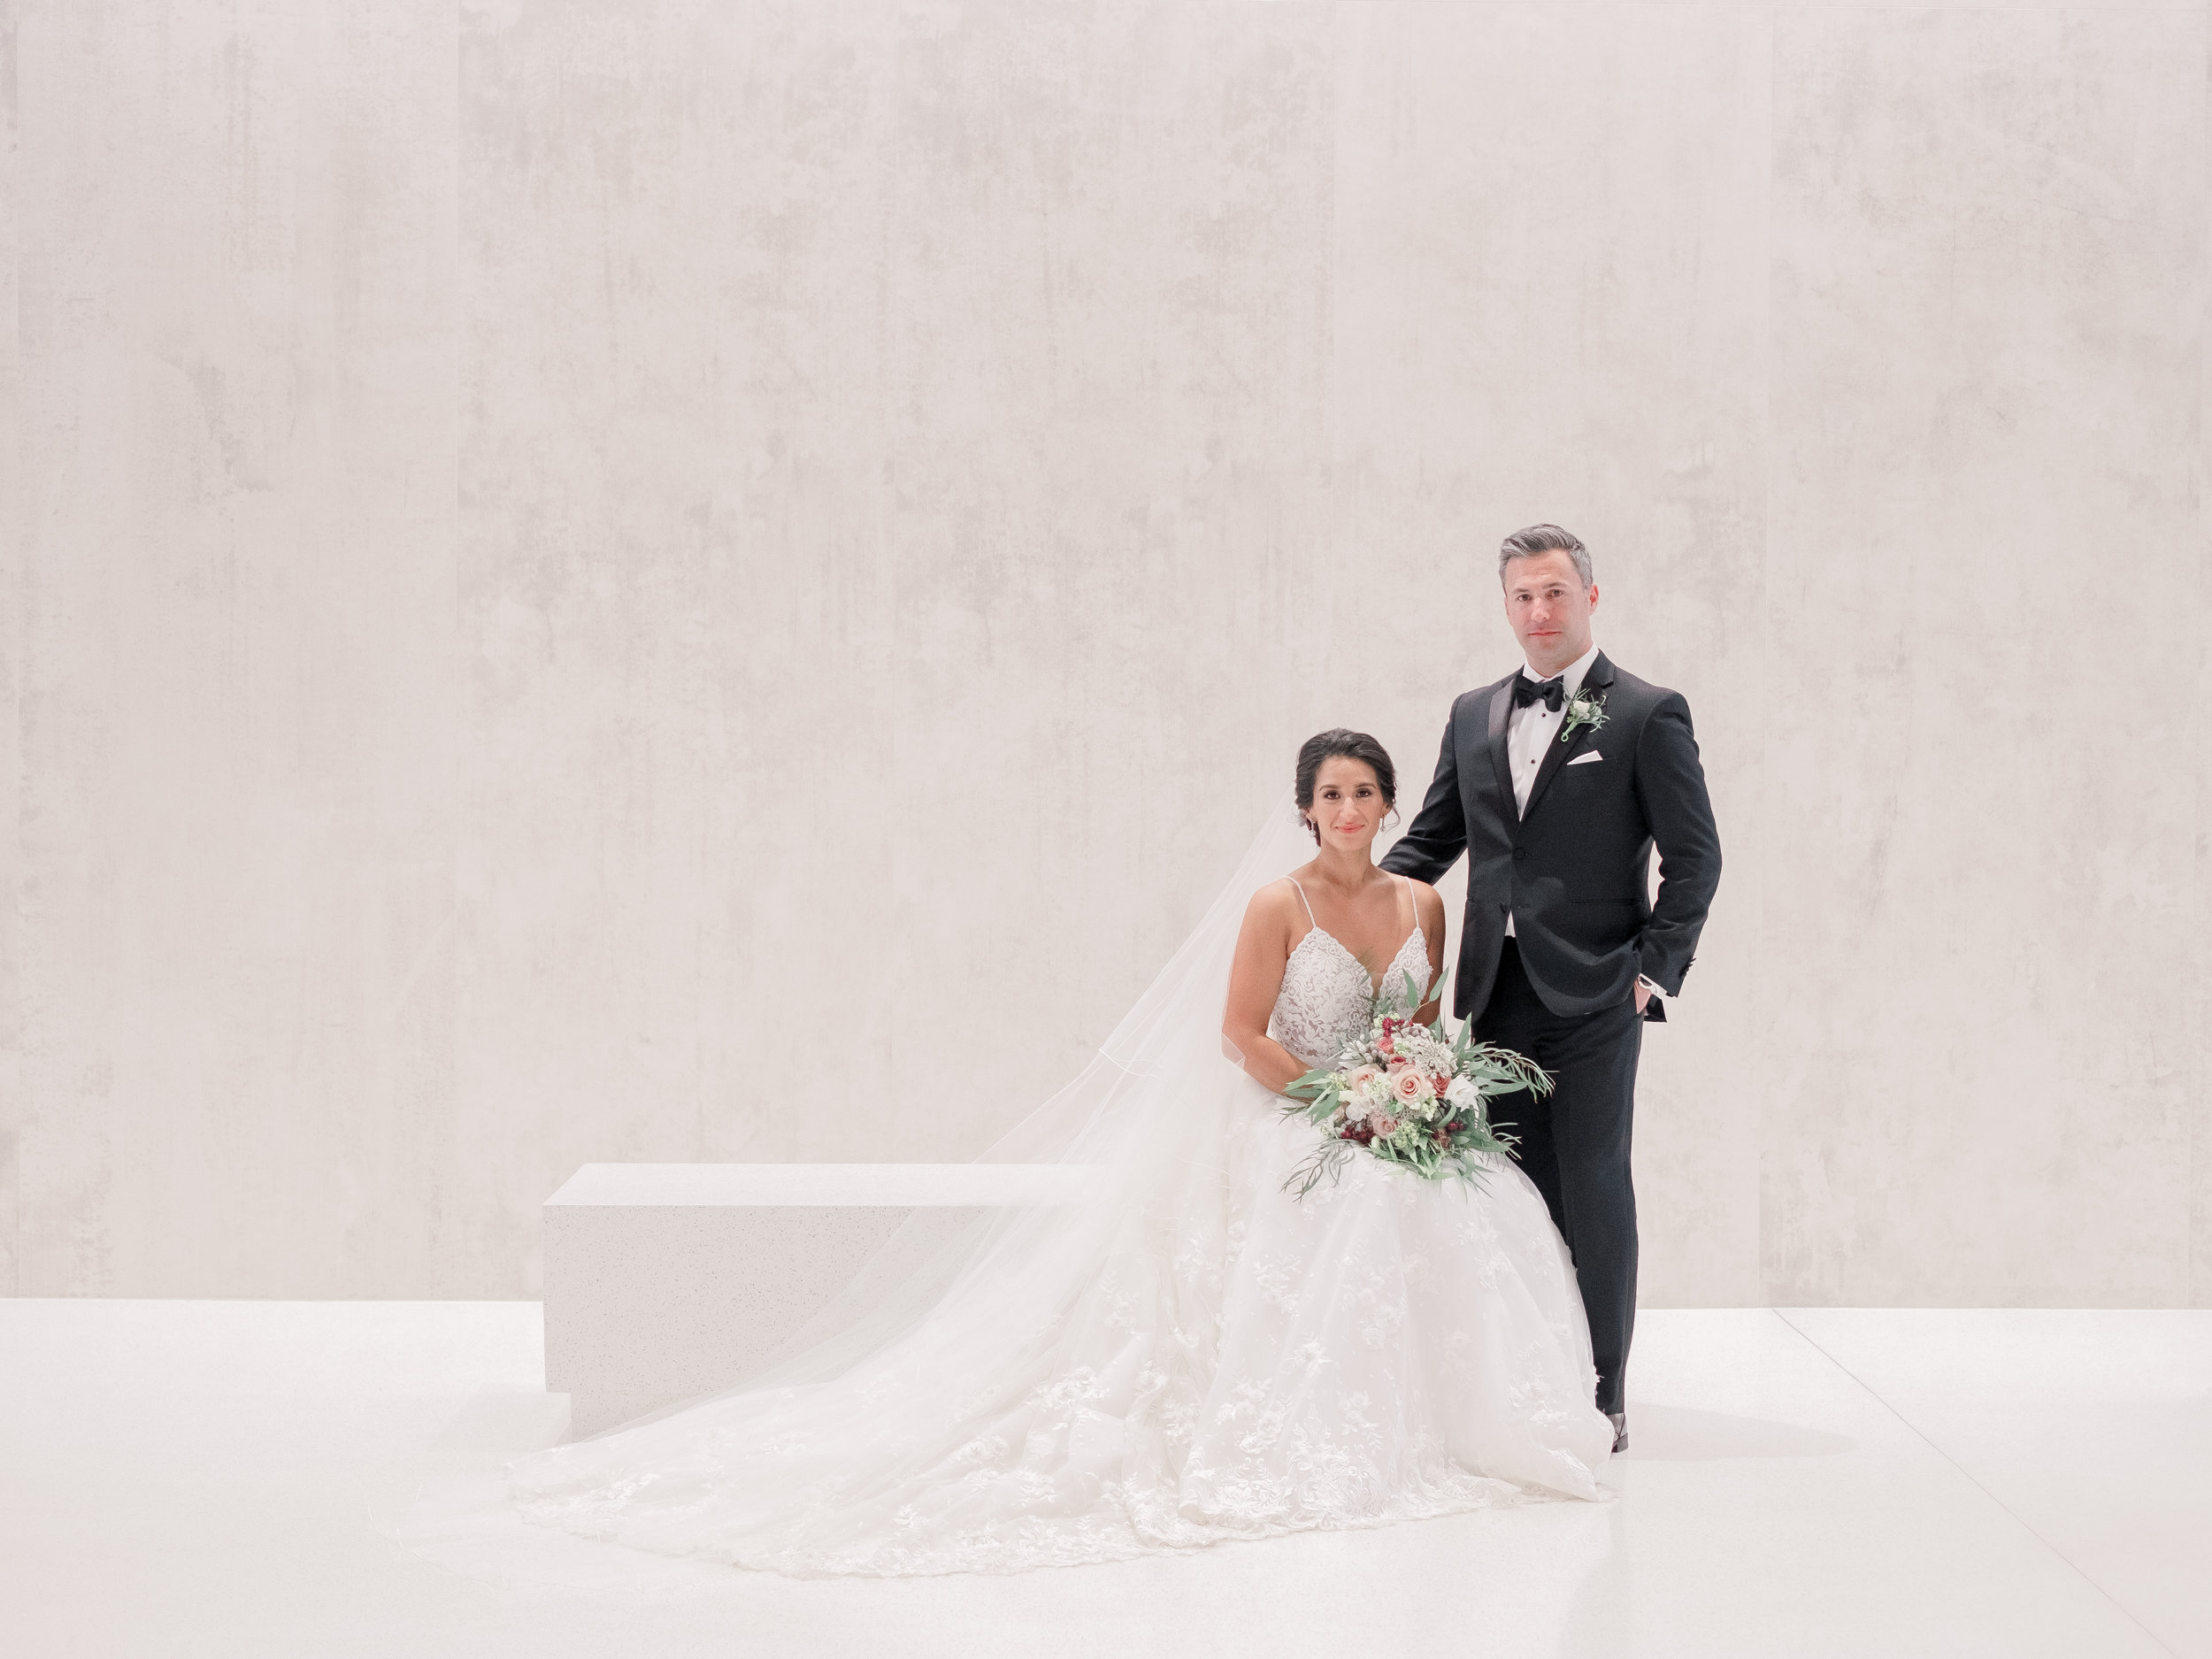 bridal-party-portraits-bride-and-groom-classic-black-tux-planned-by-mostly-becky-weddings